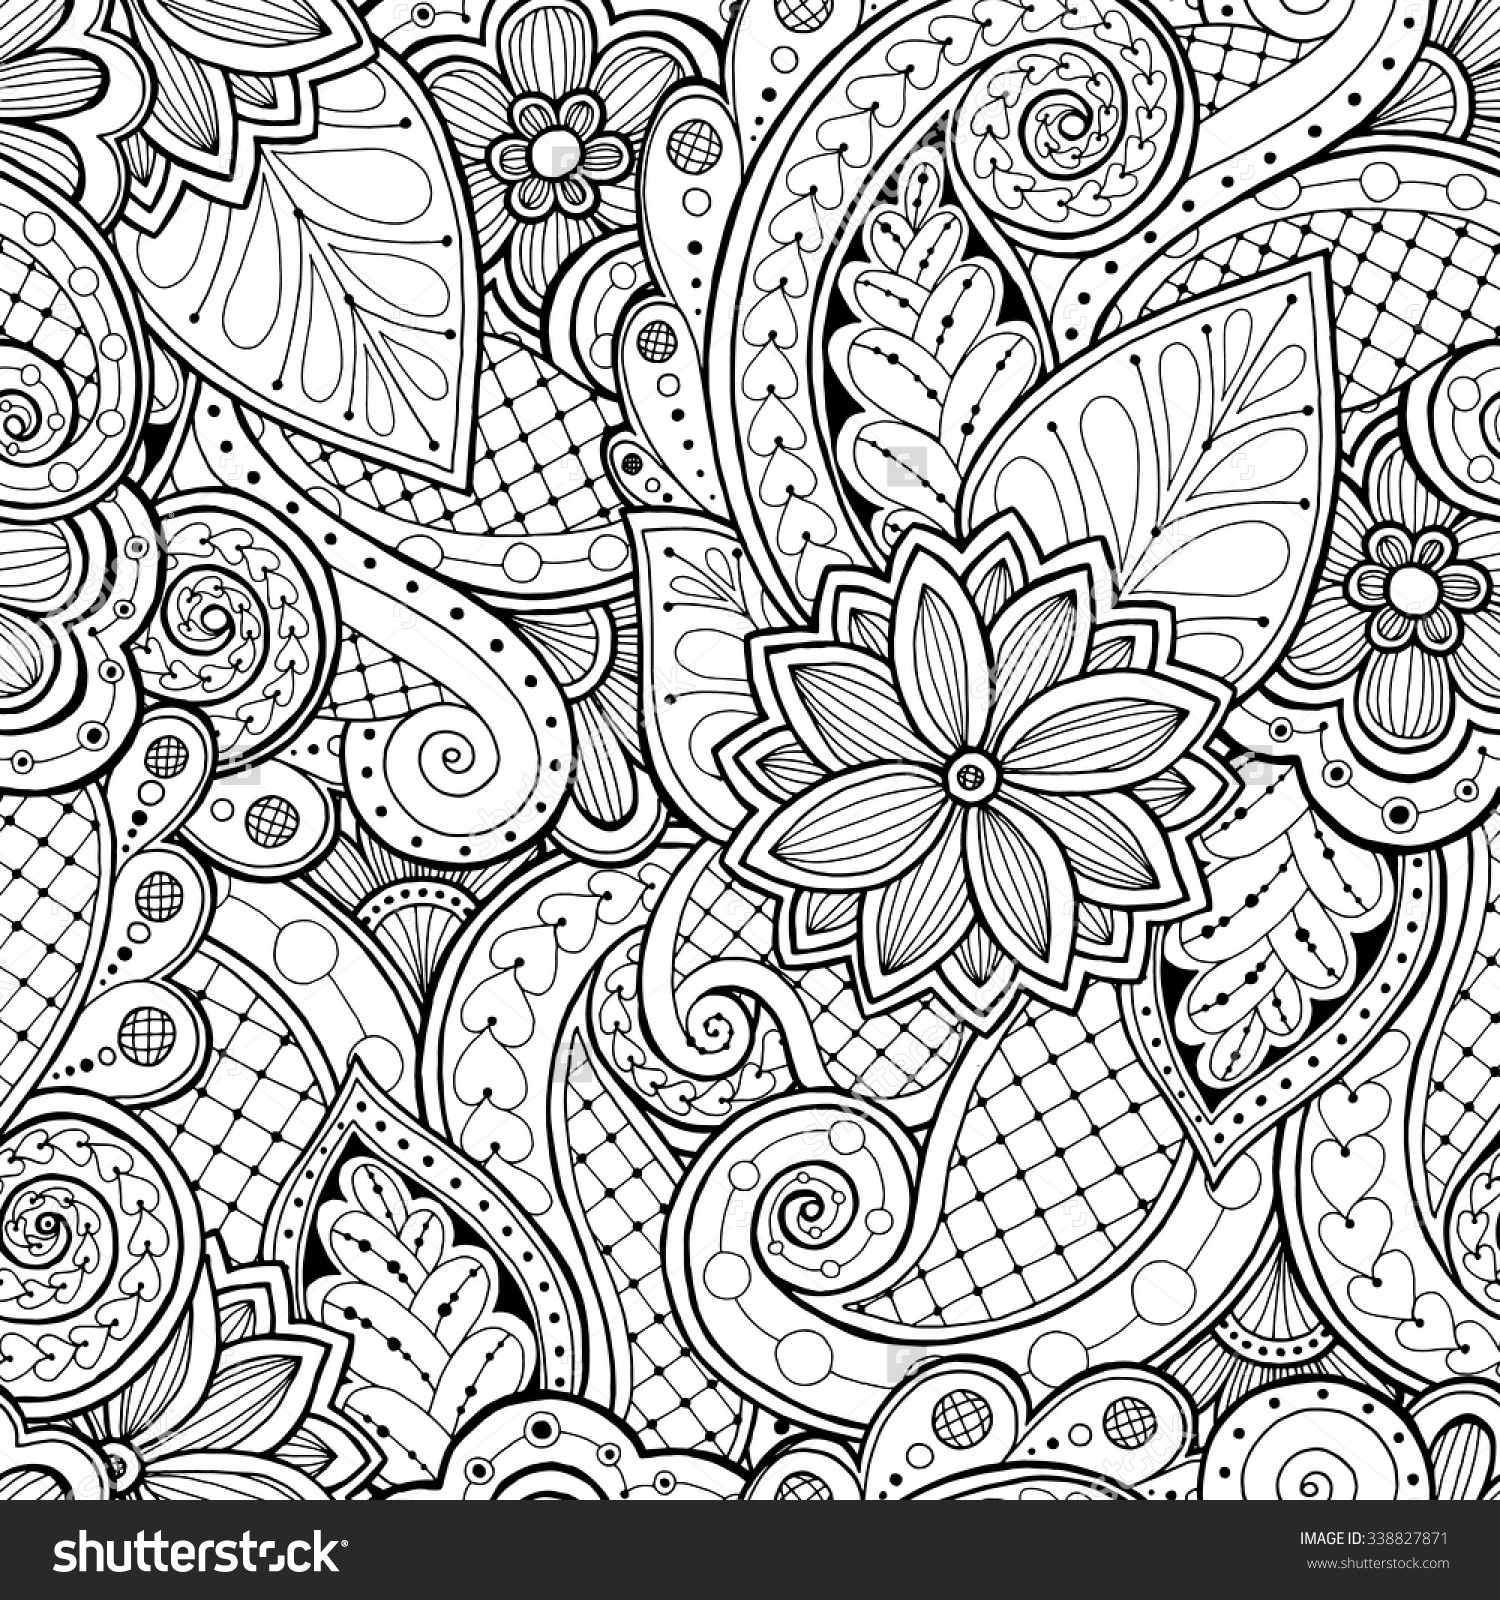 1500x1600 Beautiful Doodle Seamless Background In Vector With Doodles Free